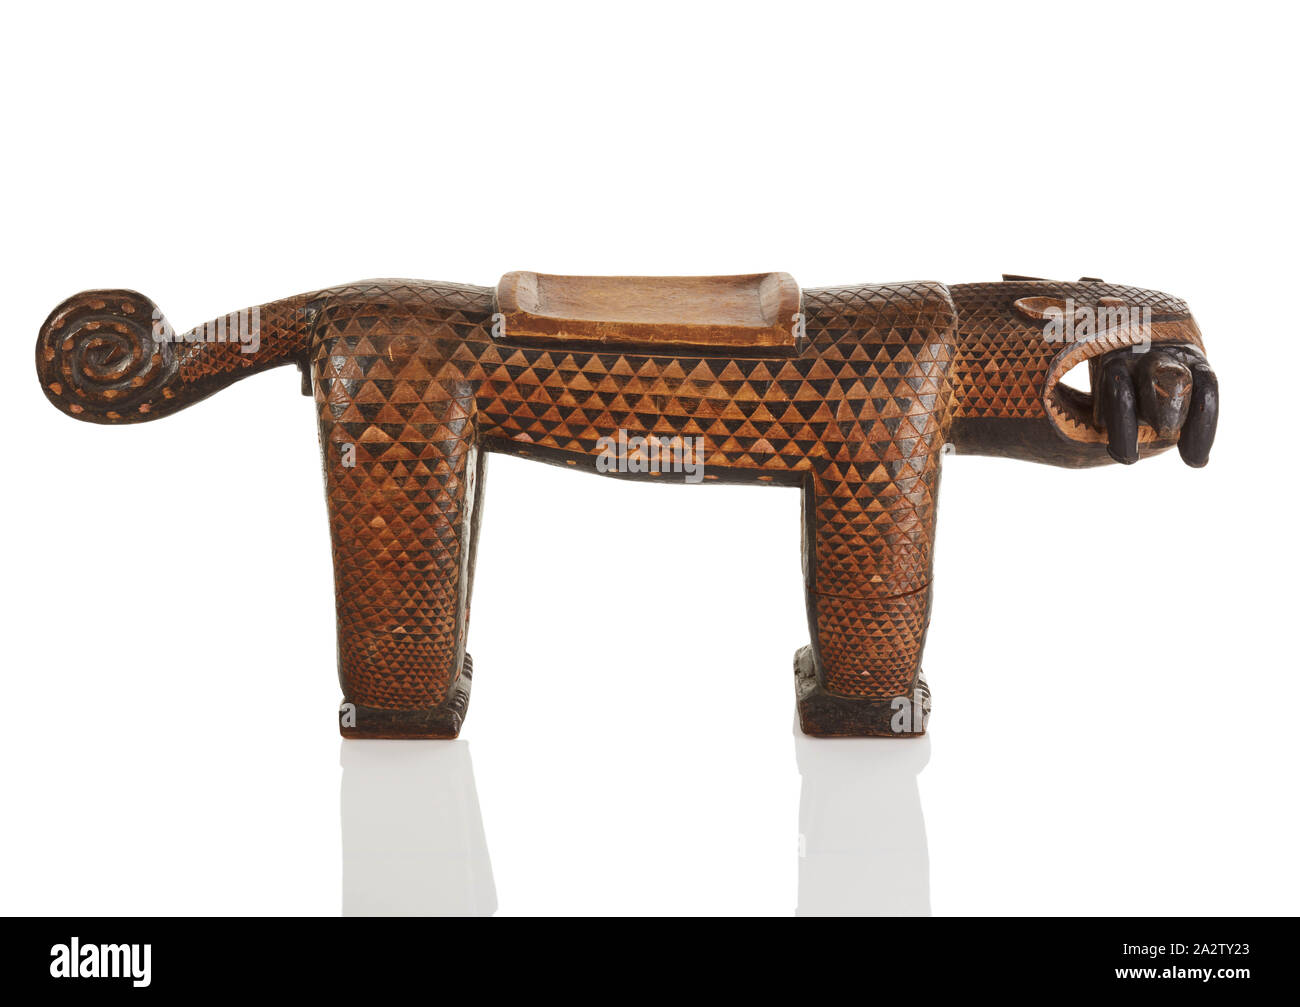 stool in the form of a leopard, Baule people, 20th century, wood, pigment, 18-1/2 x 14-3/4 x 12 in., African Art Stock Photo